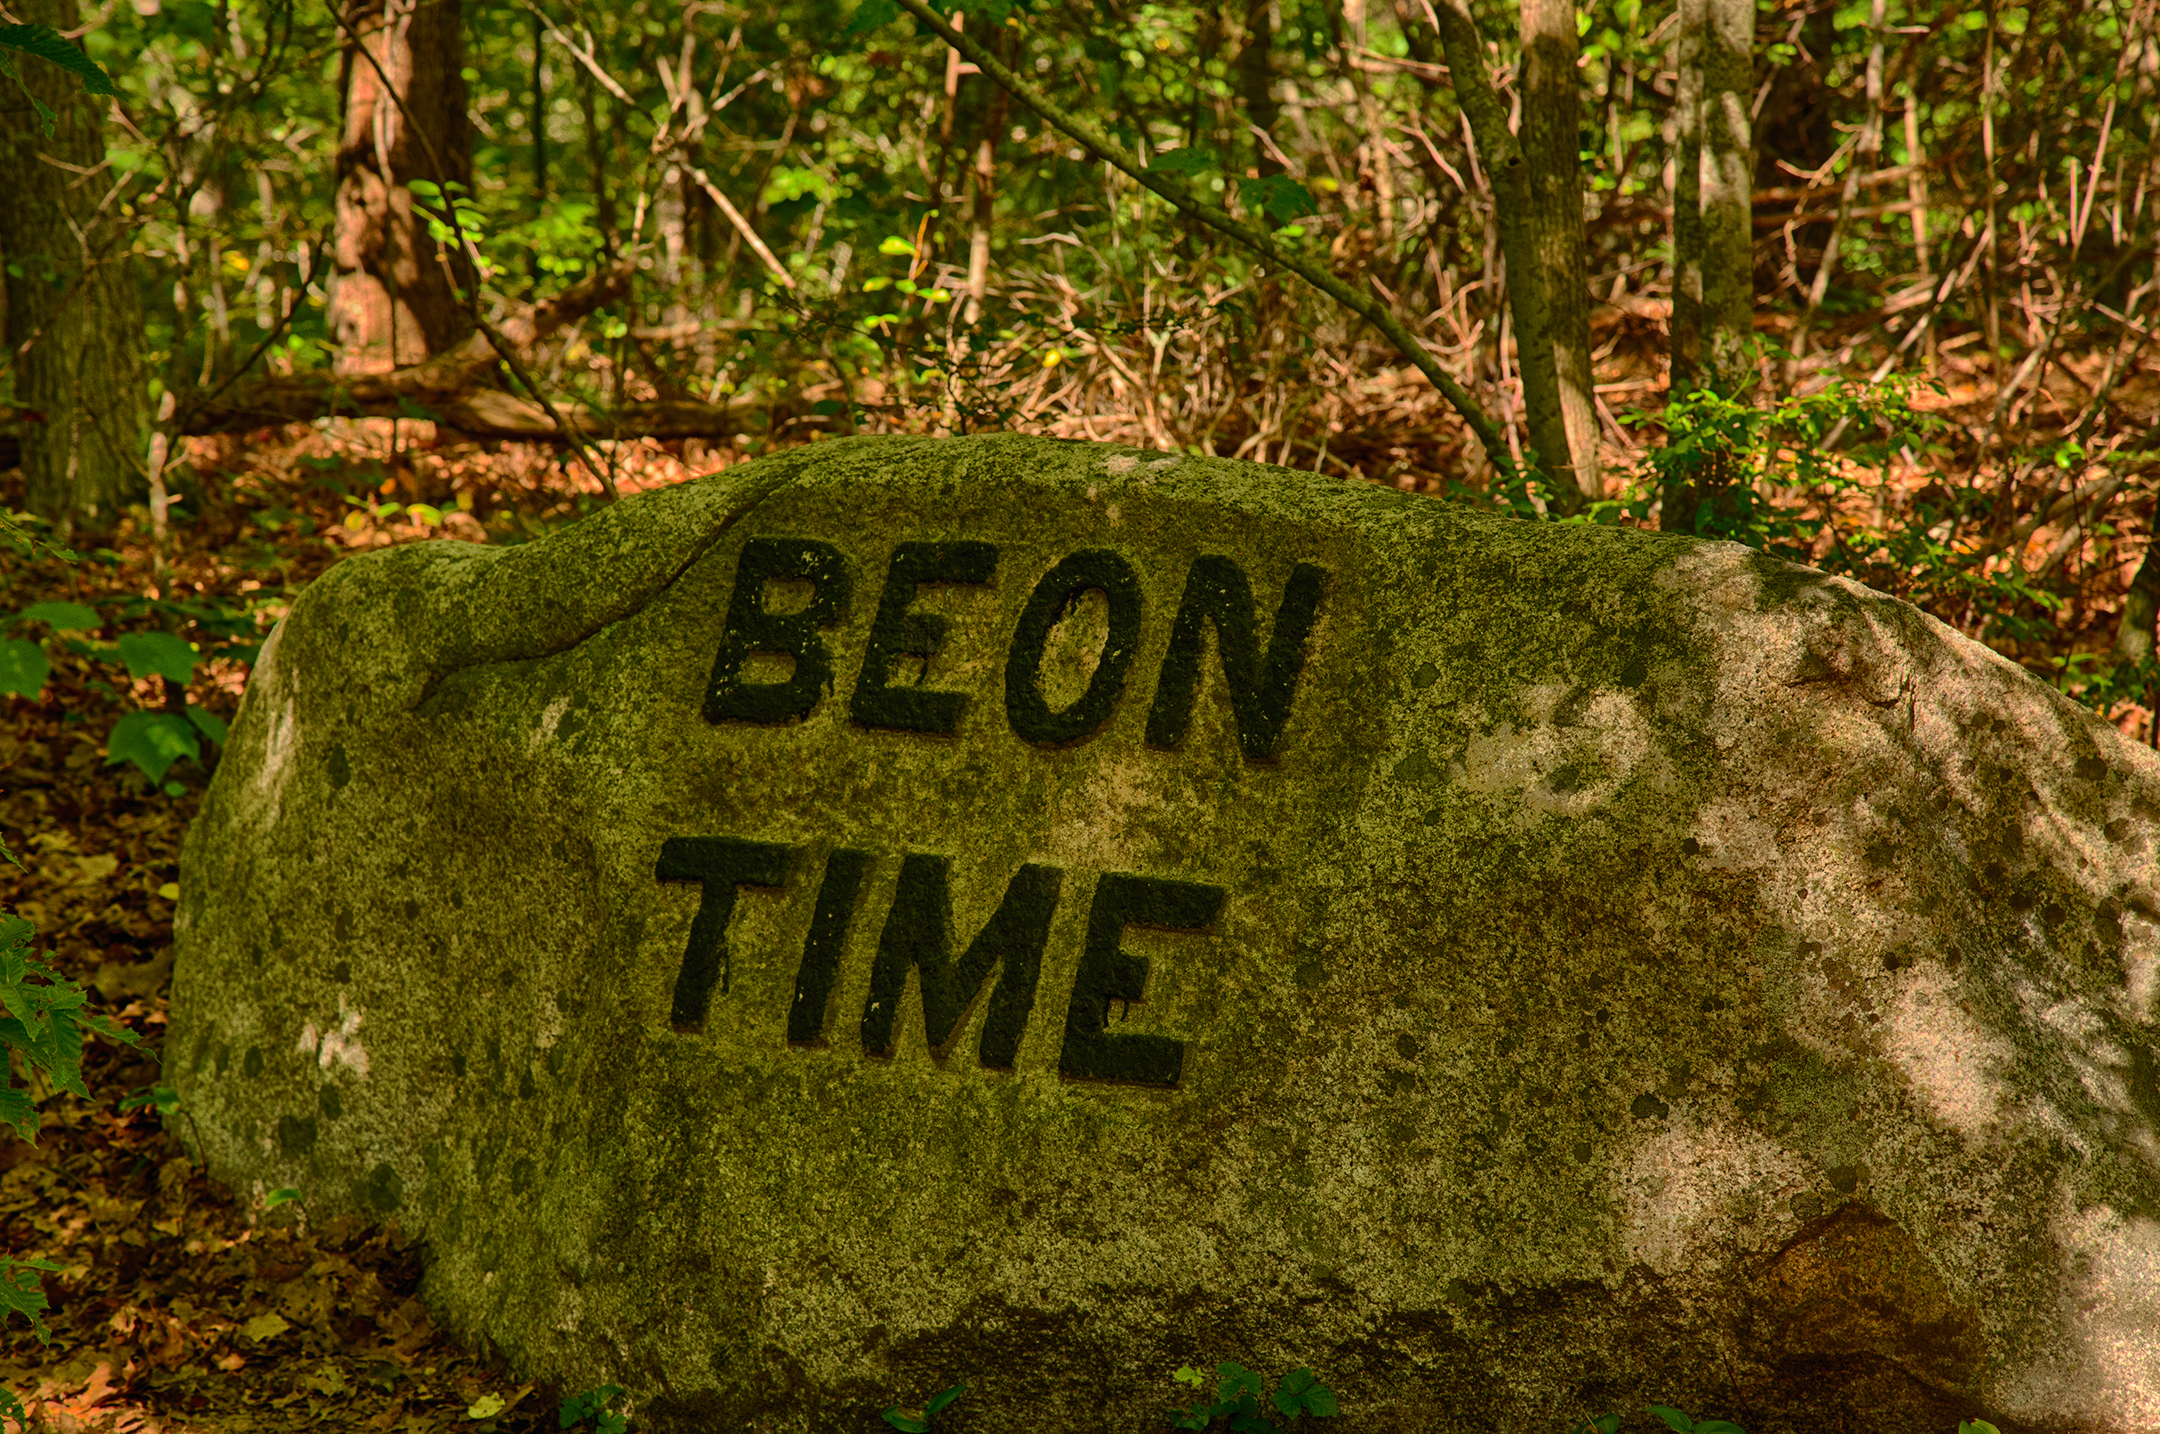 Be-on-time-boulder.jpg